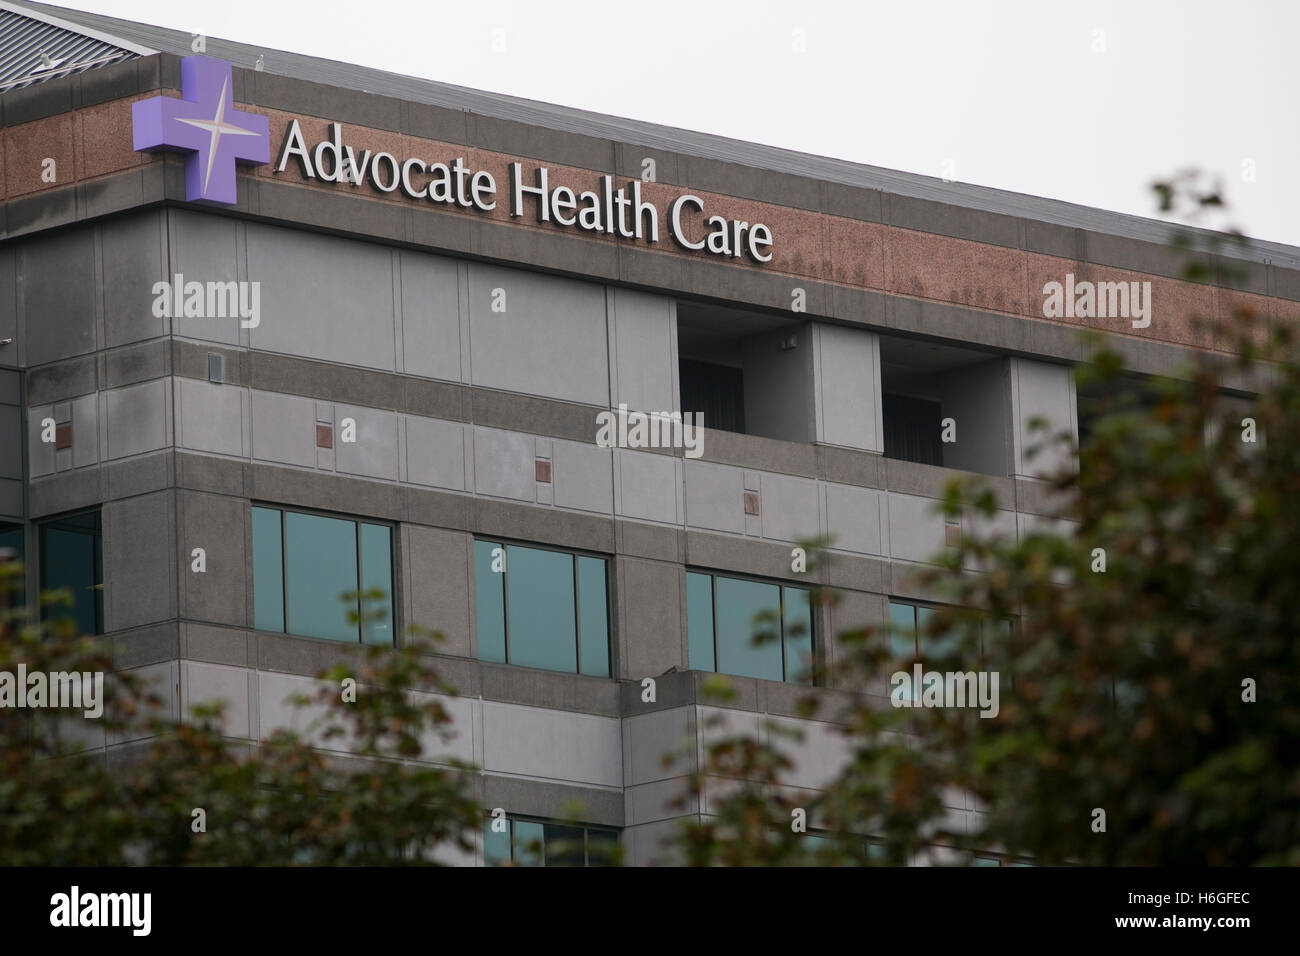 Image result for advocate health care headquarters